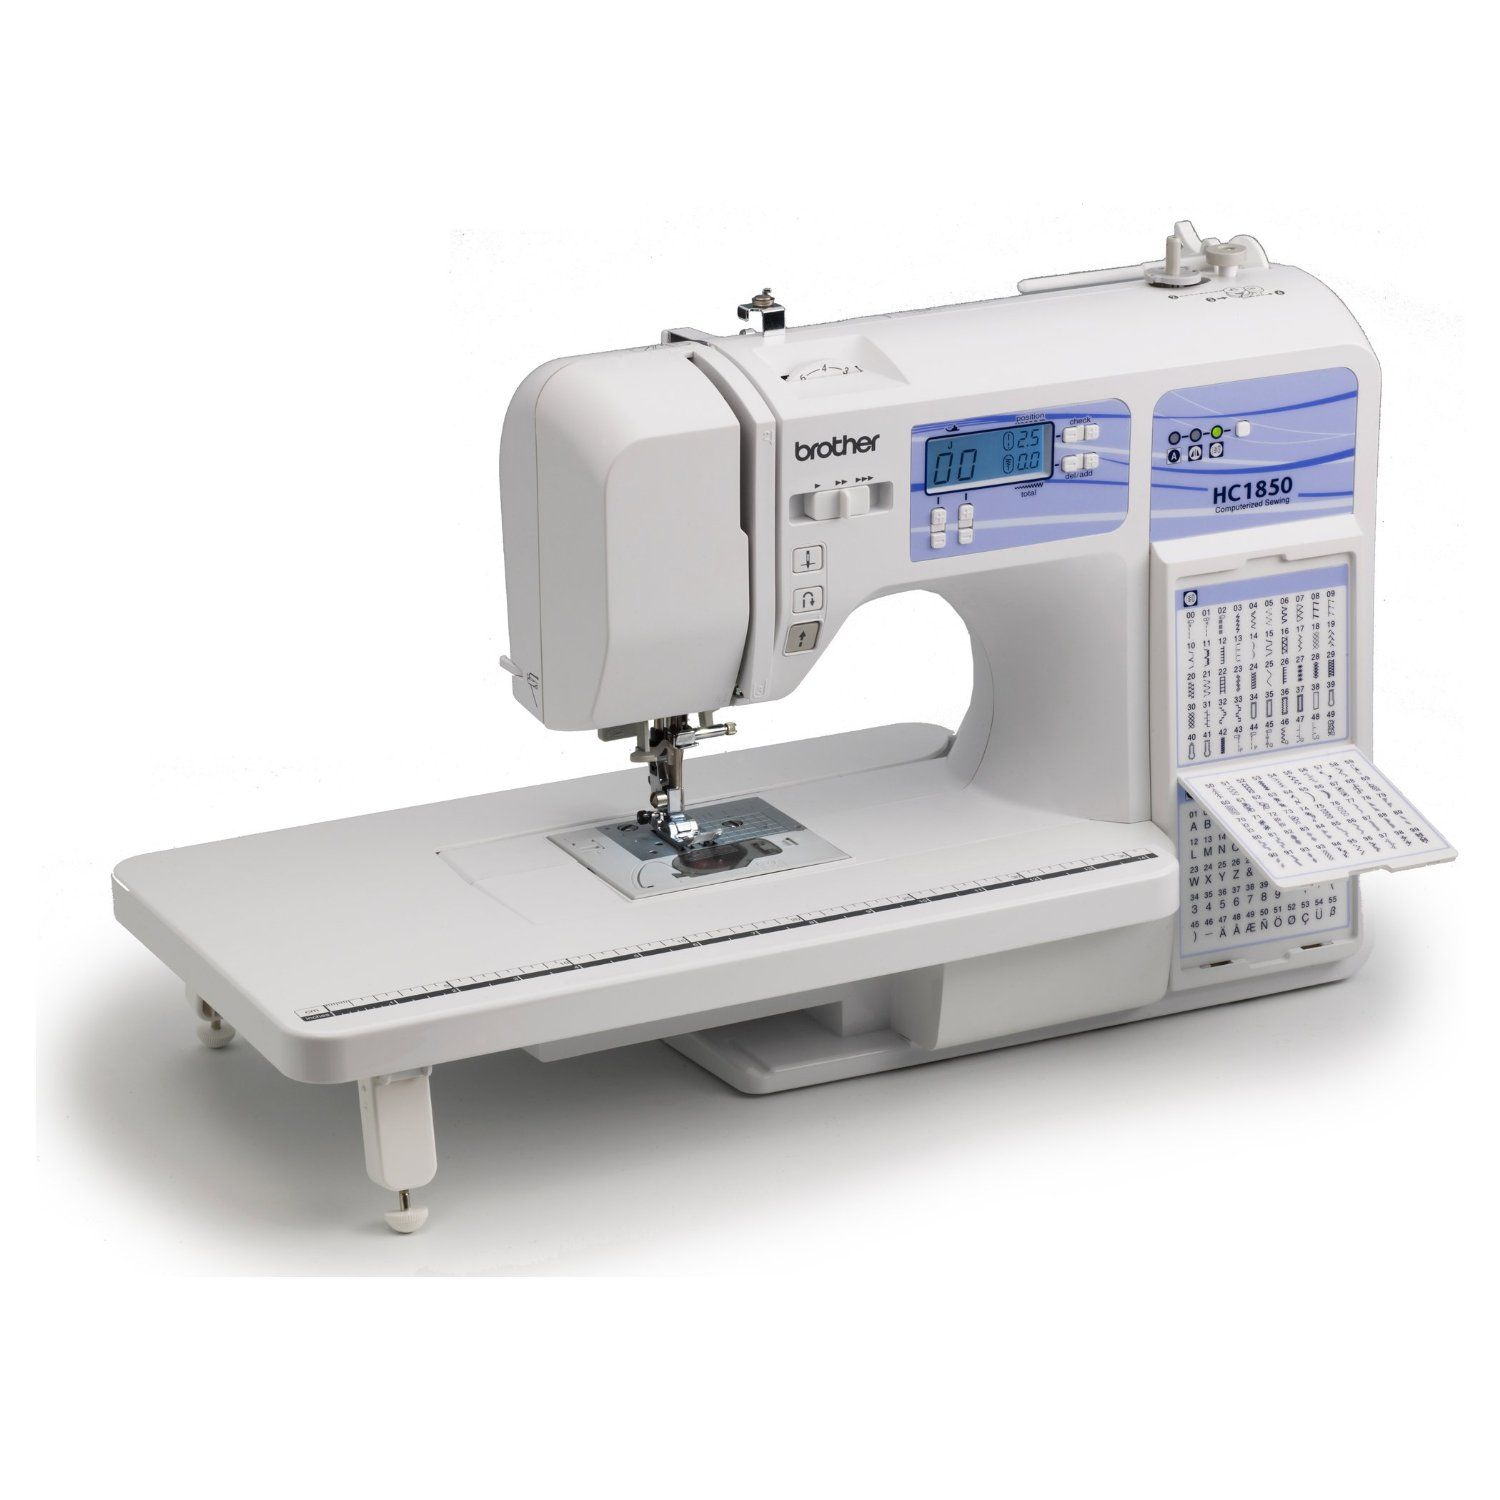 Brother HC1850 Computerized Sewing and Quilting Machine with 130 ... : brothers quilting sewing machine - Adamdwight.com